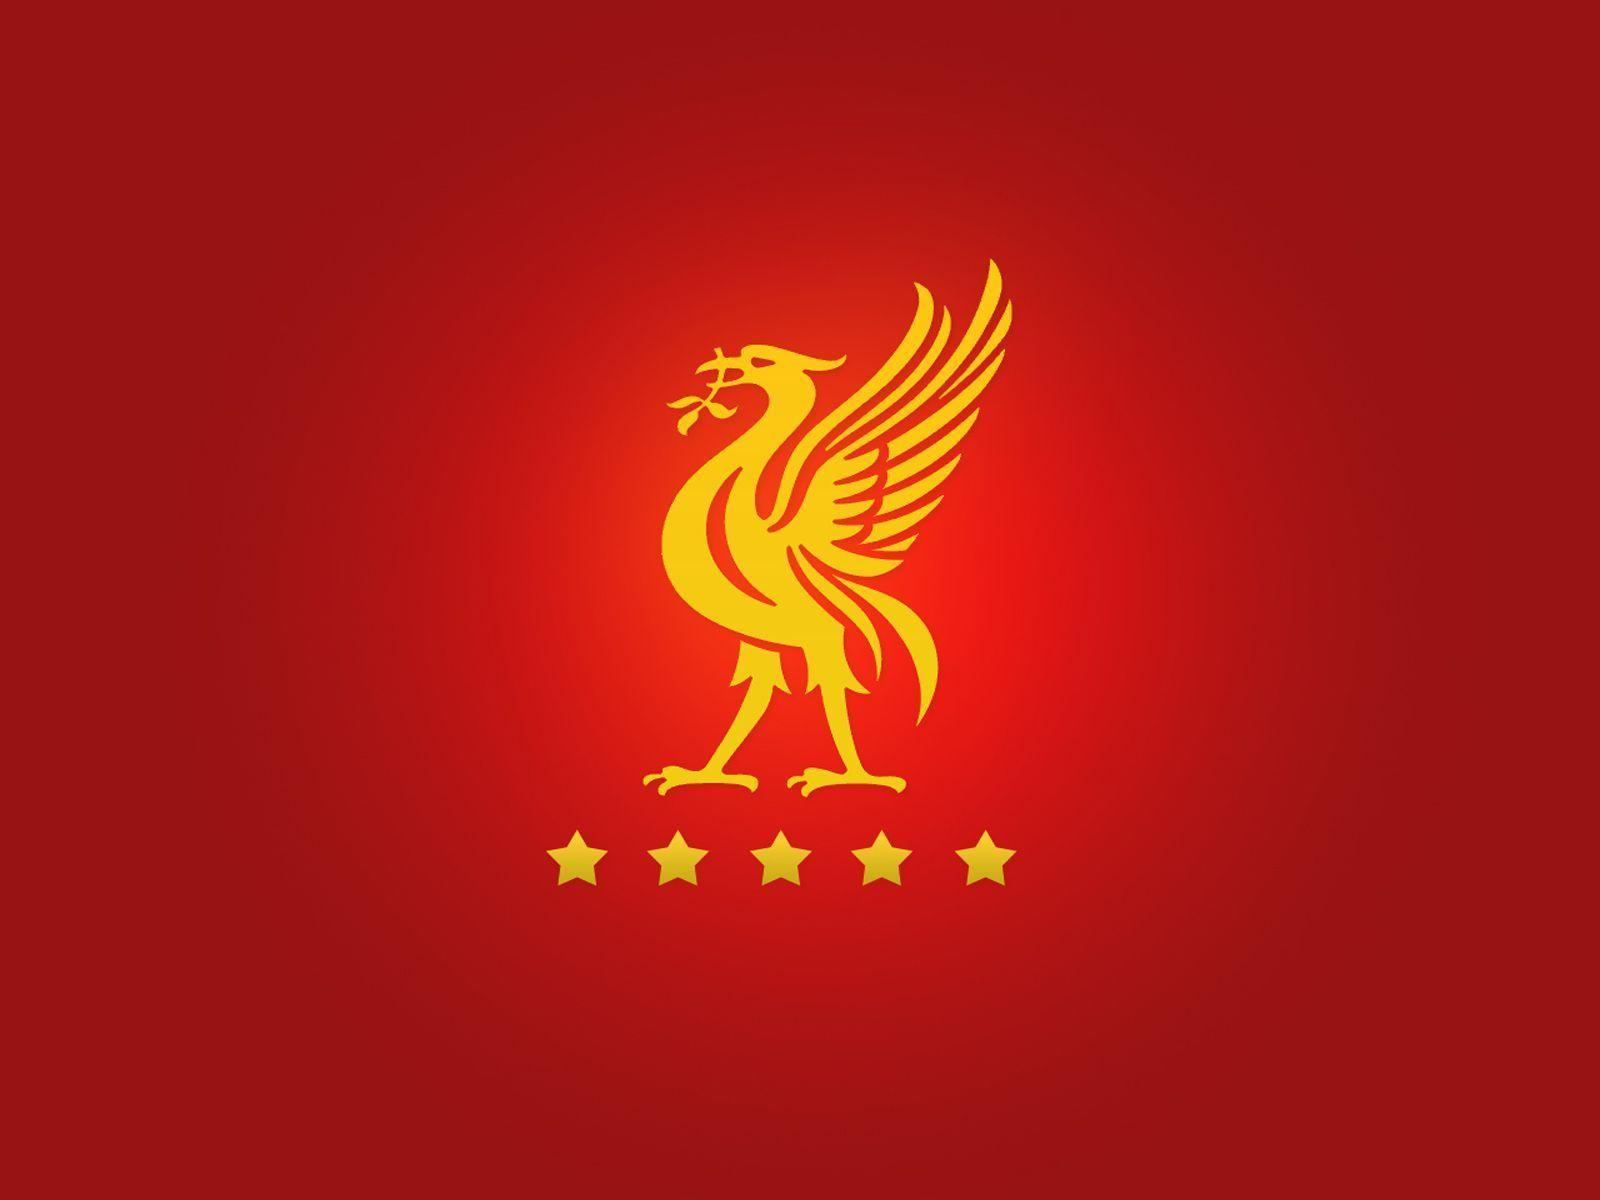 Liverpool Crest Wallpapers (95 Wallpapers) - HD Wallpapers